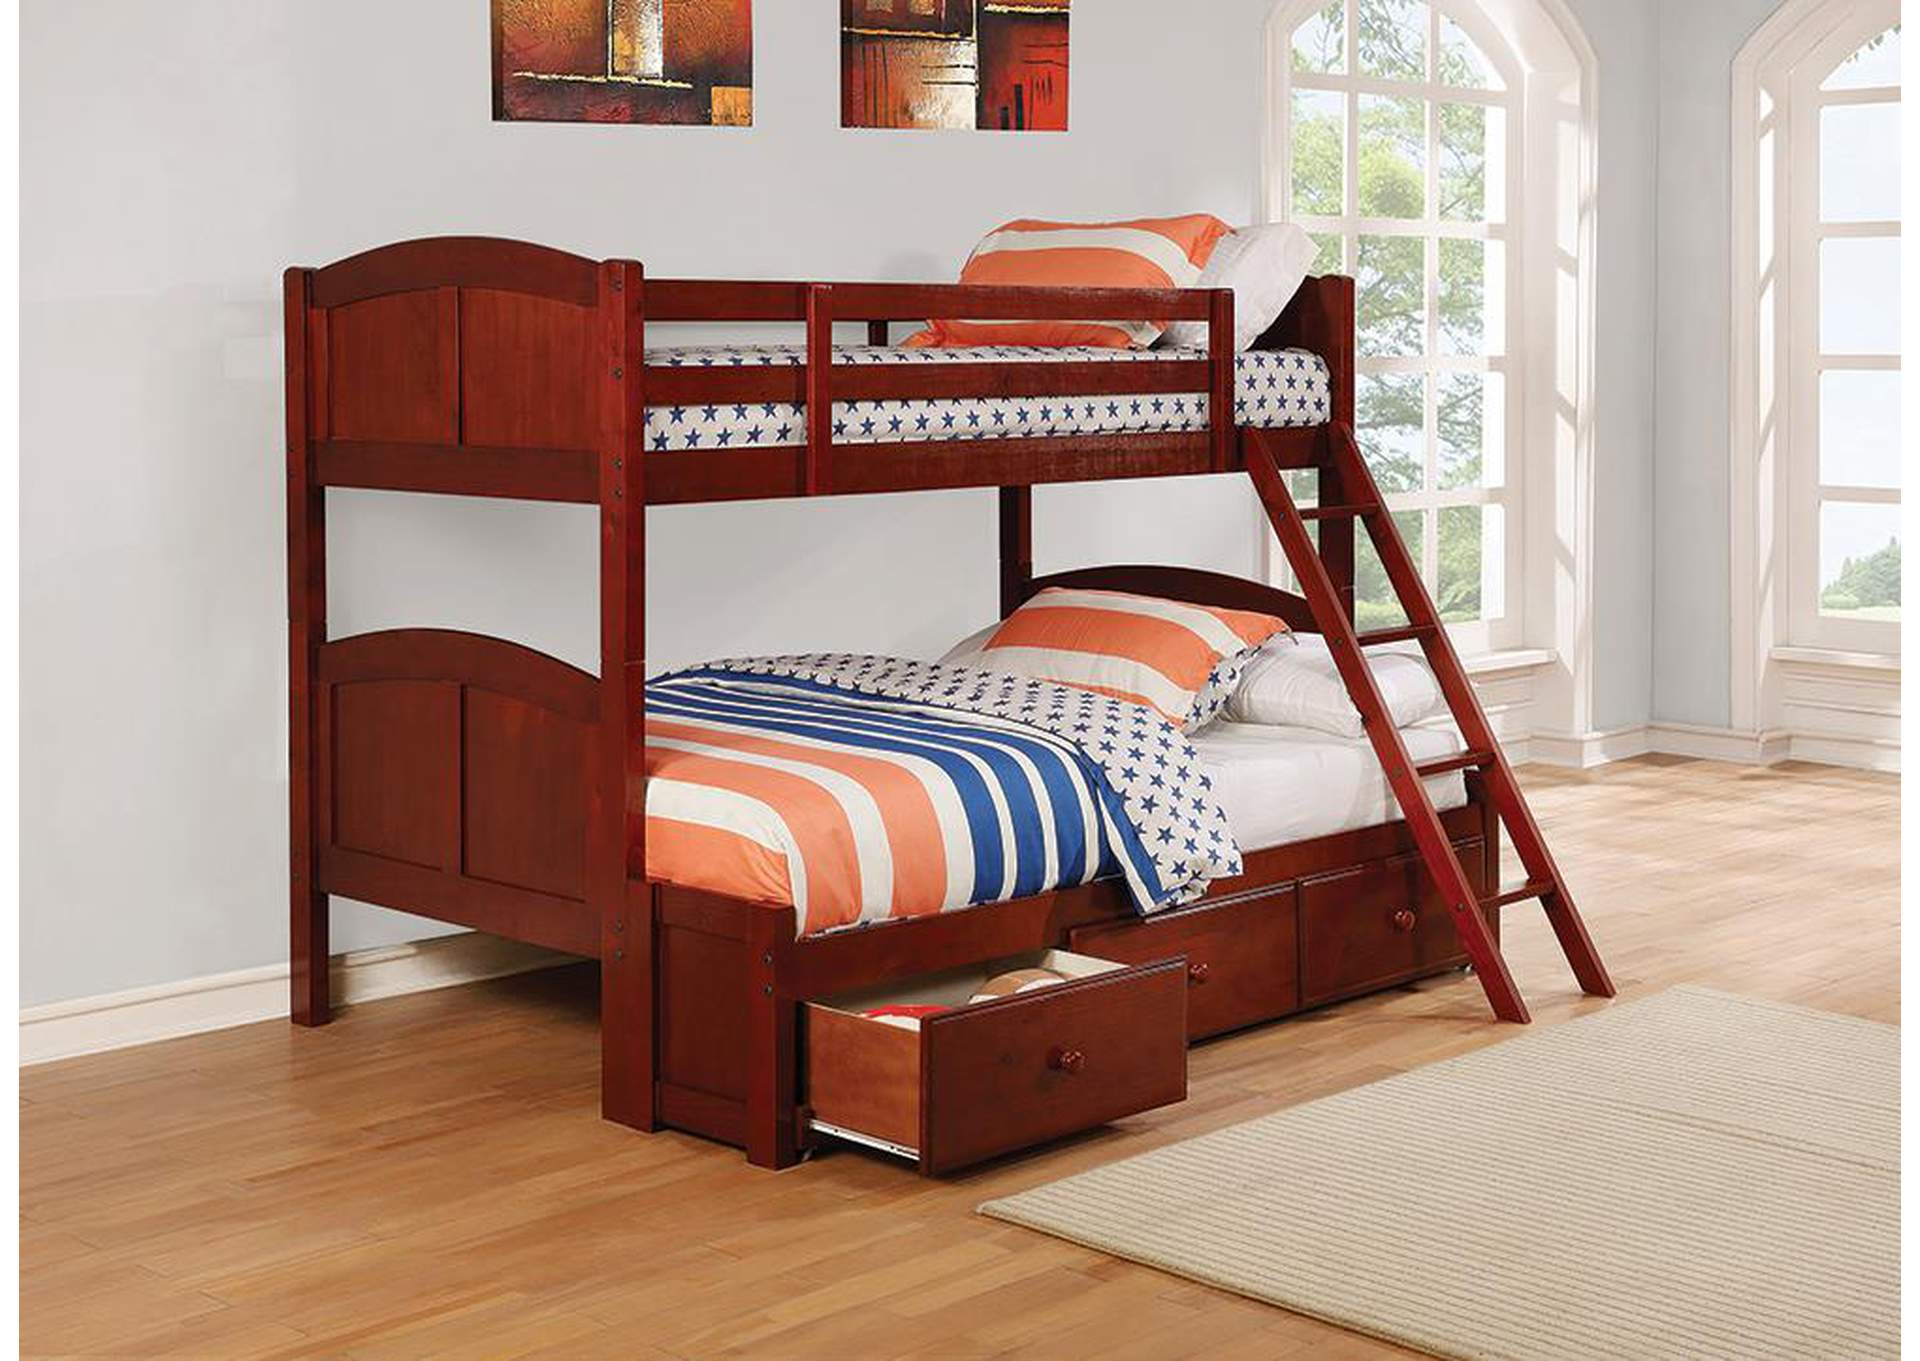 Parker Chestnut Panel Twin-over-Full Bunk Bed,Coaster Furniture